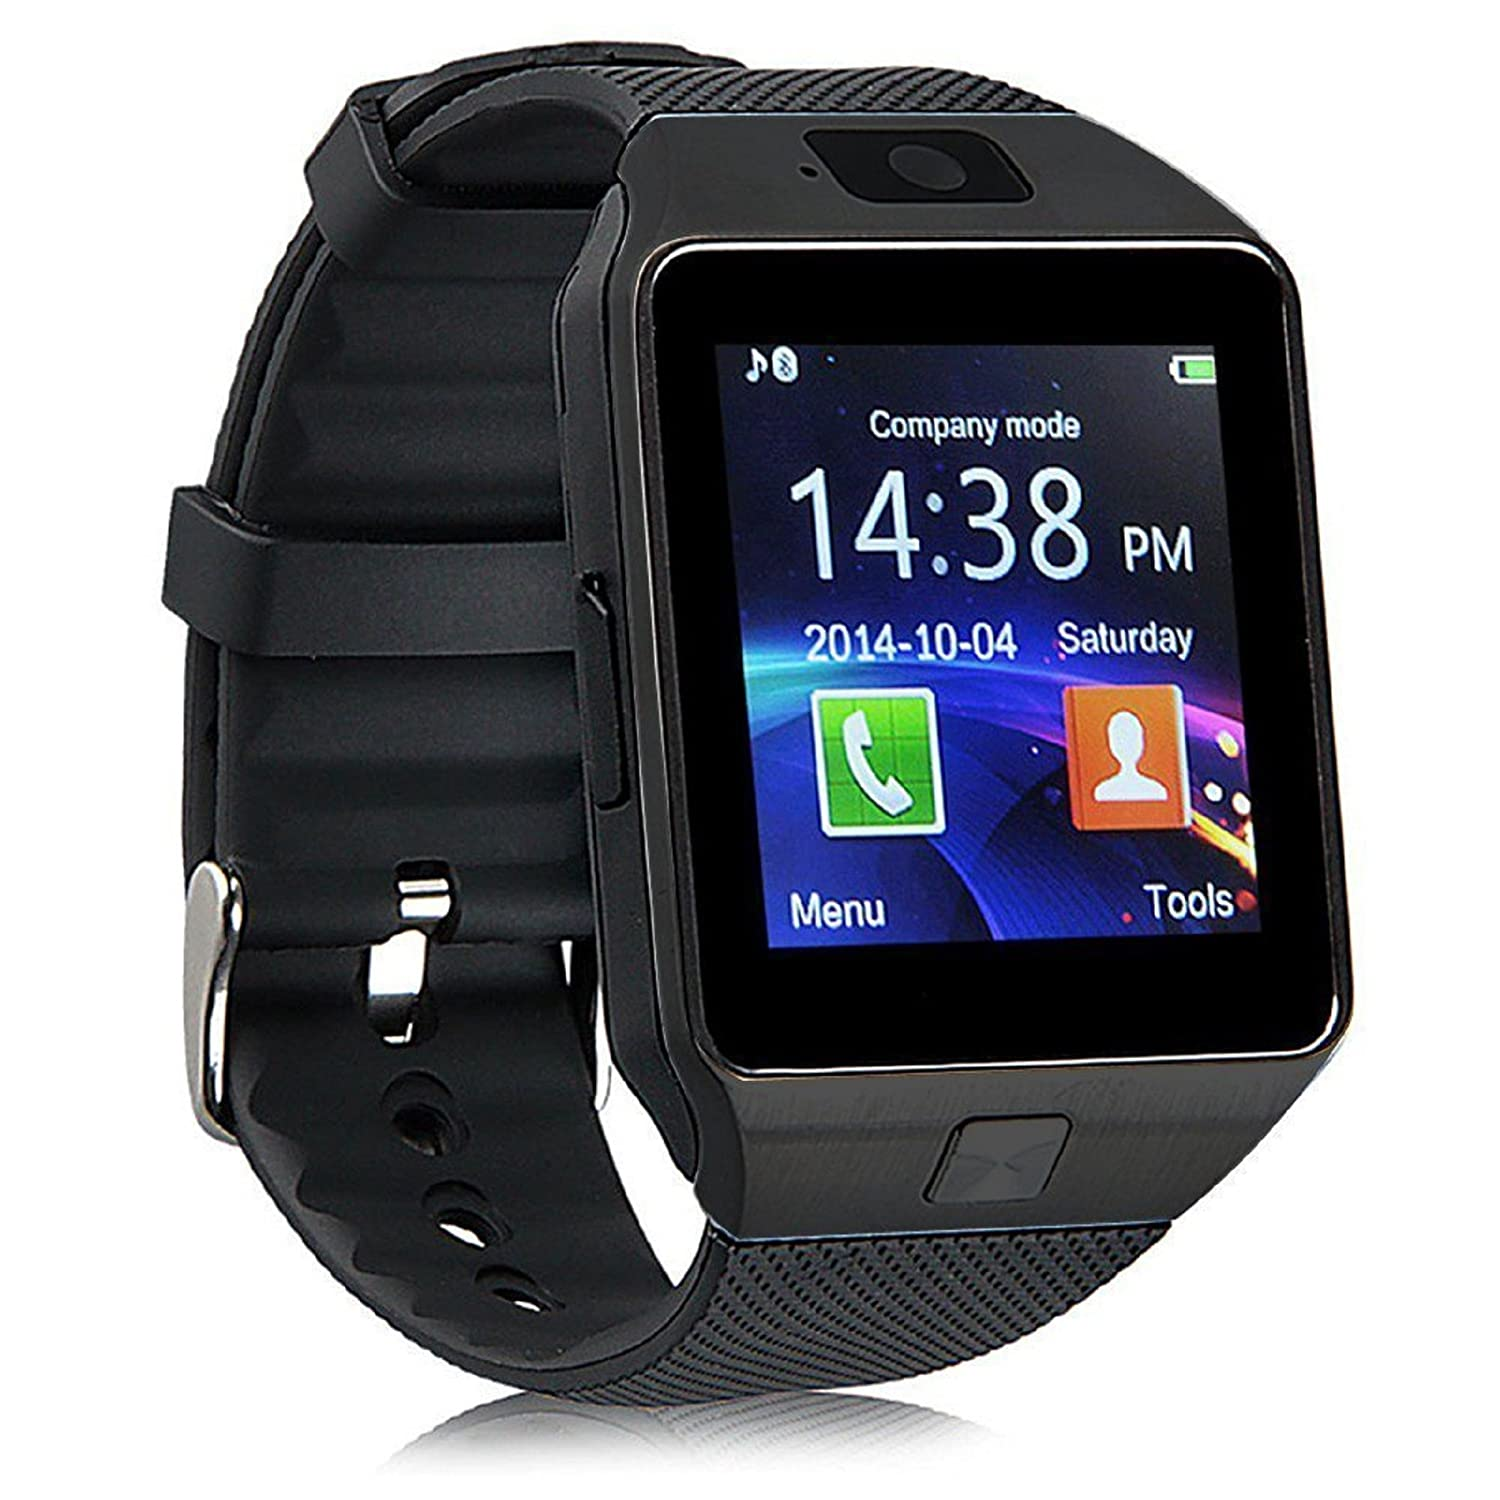 watch smart rug cheap support tempe body rate uv smartwatches siri smartwatch torntisc detector rugged heart